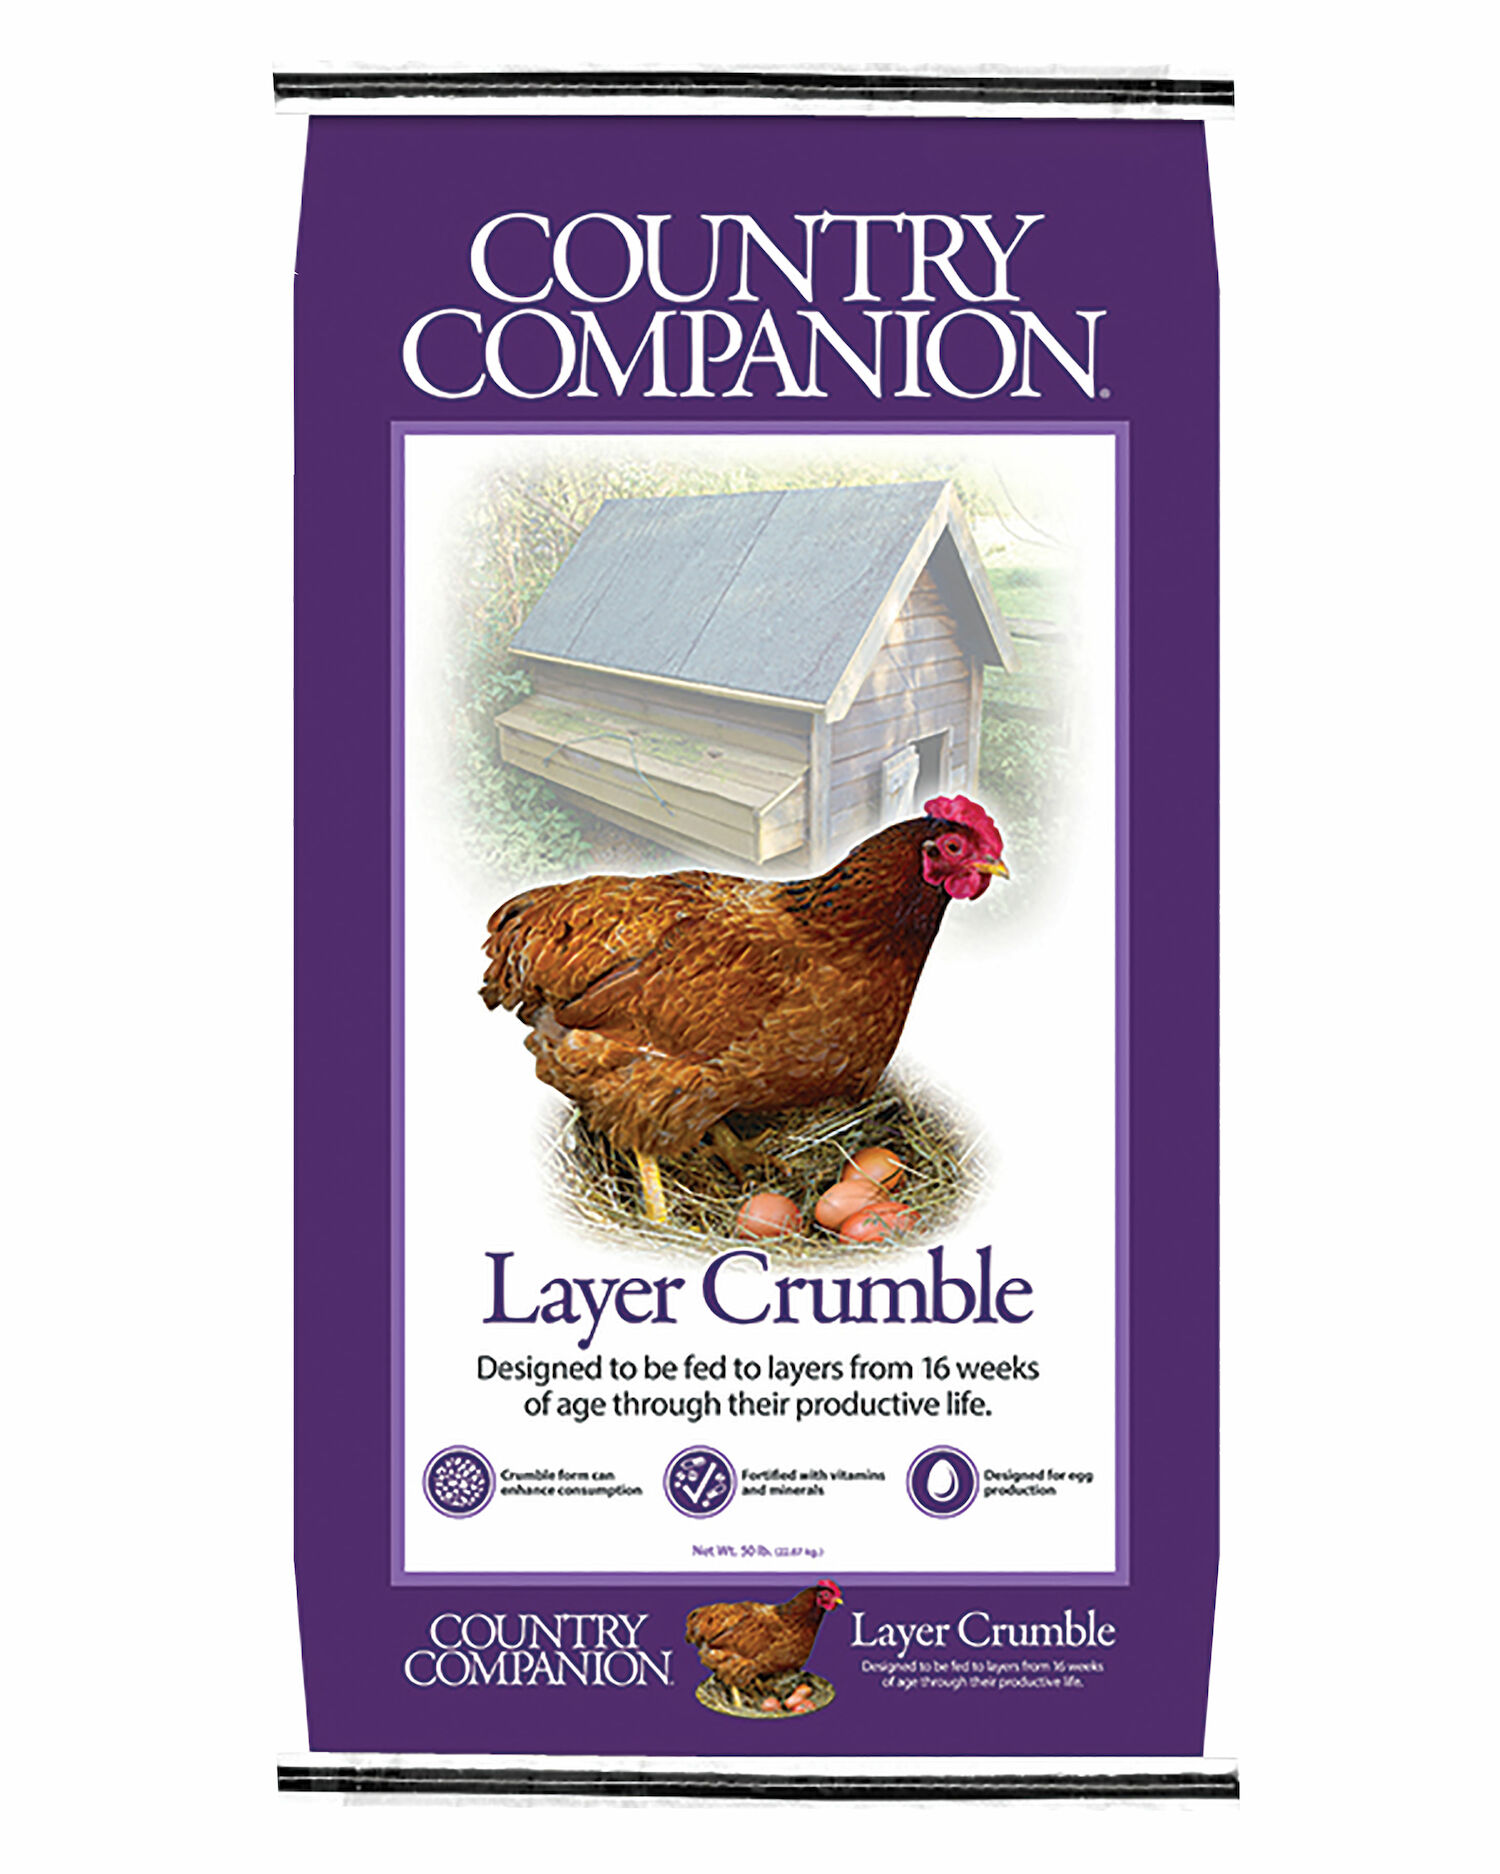 722304404291_Country_Companion_Layer_Crumble.jpg